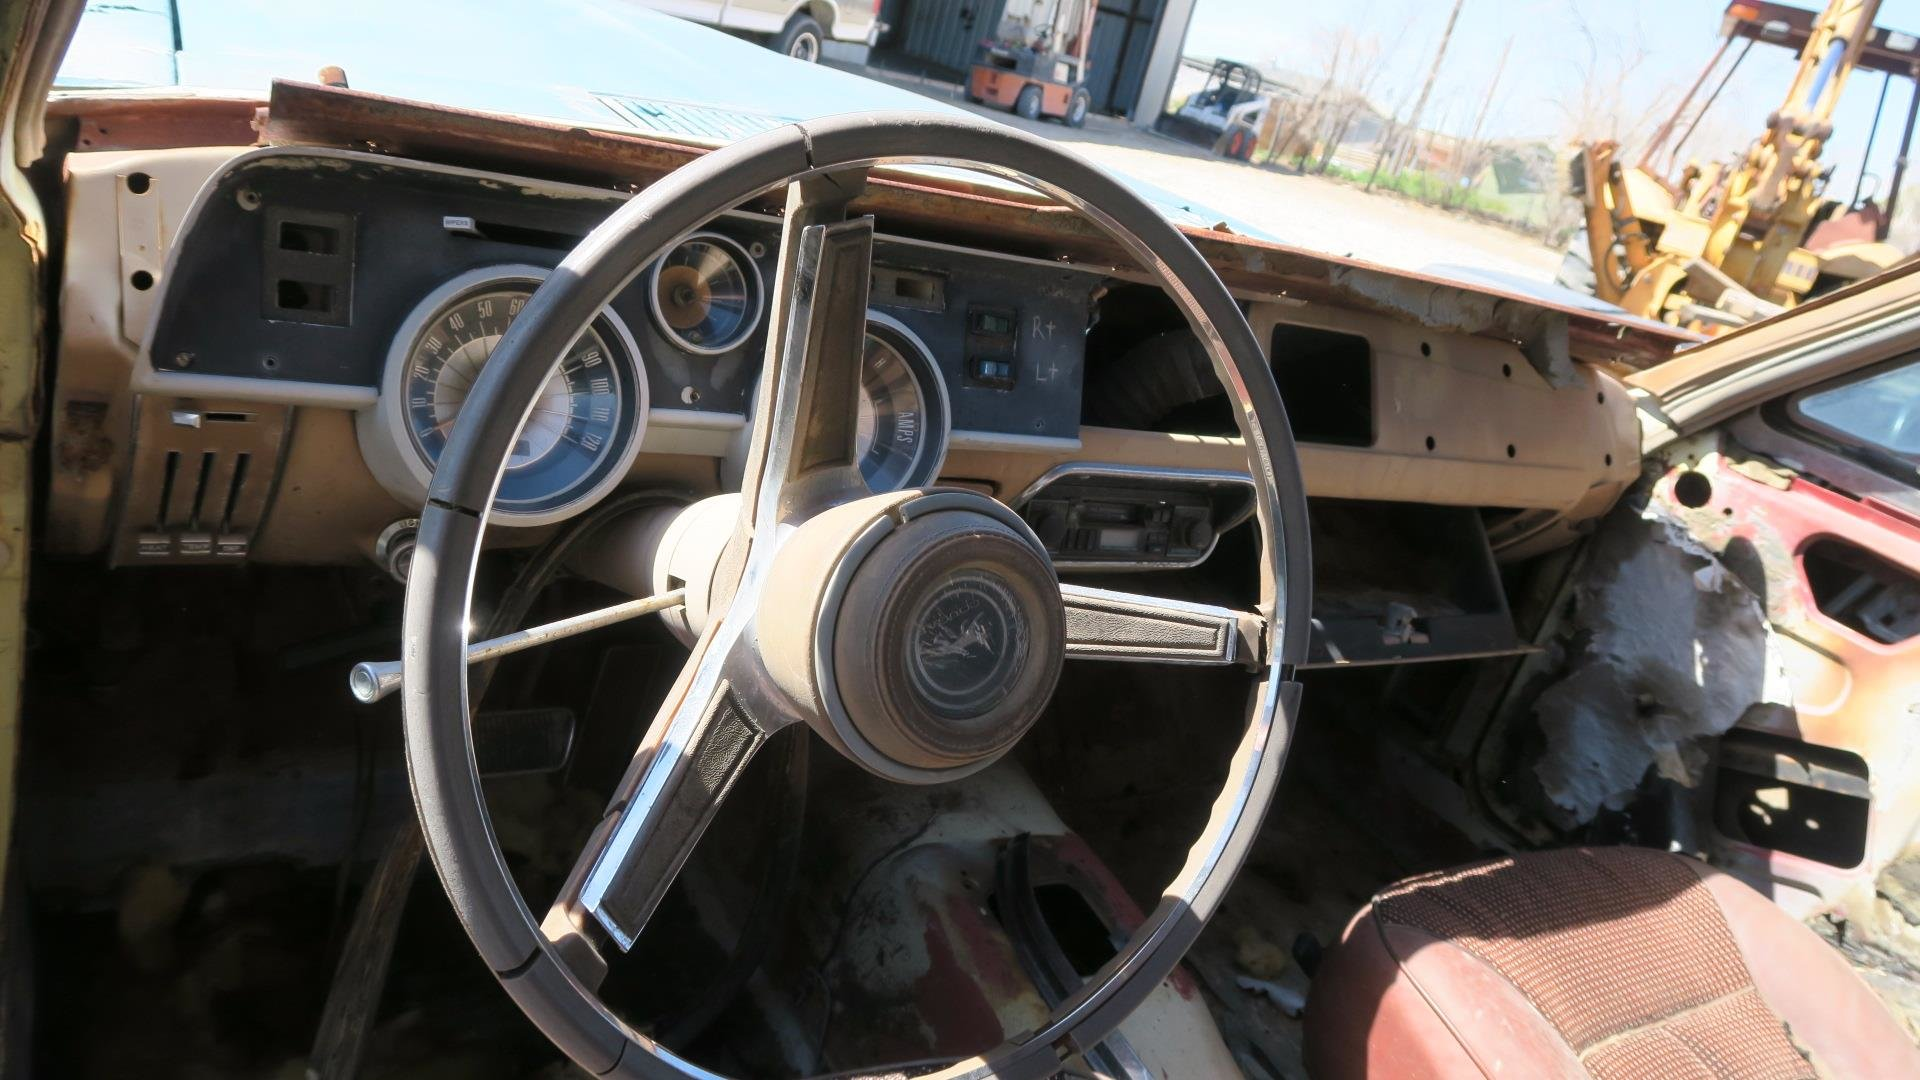 1967 Mercury Cougar 289 C Code Auto Project Blue  $1.9k For Sale (picture 5 of 6)